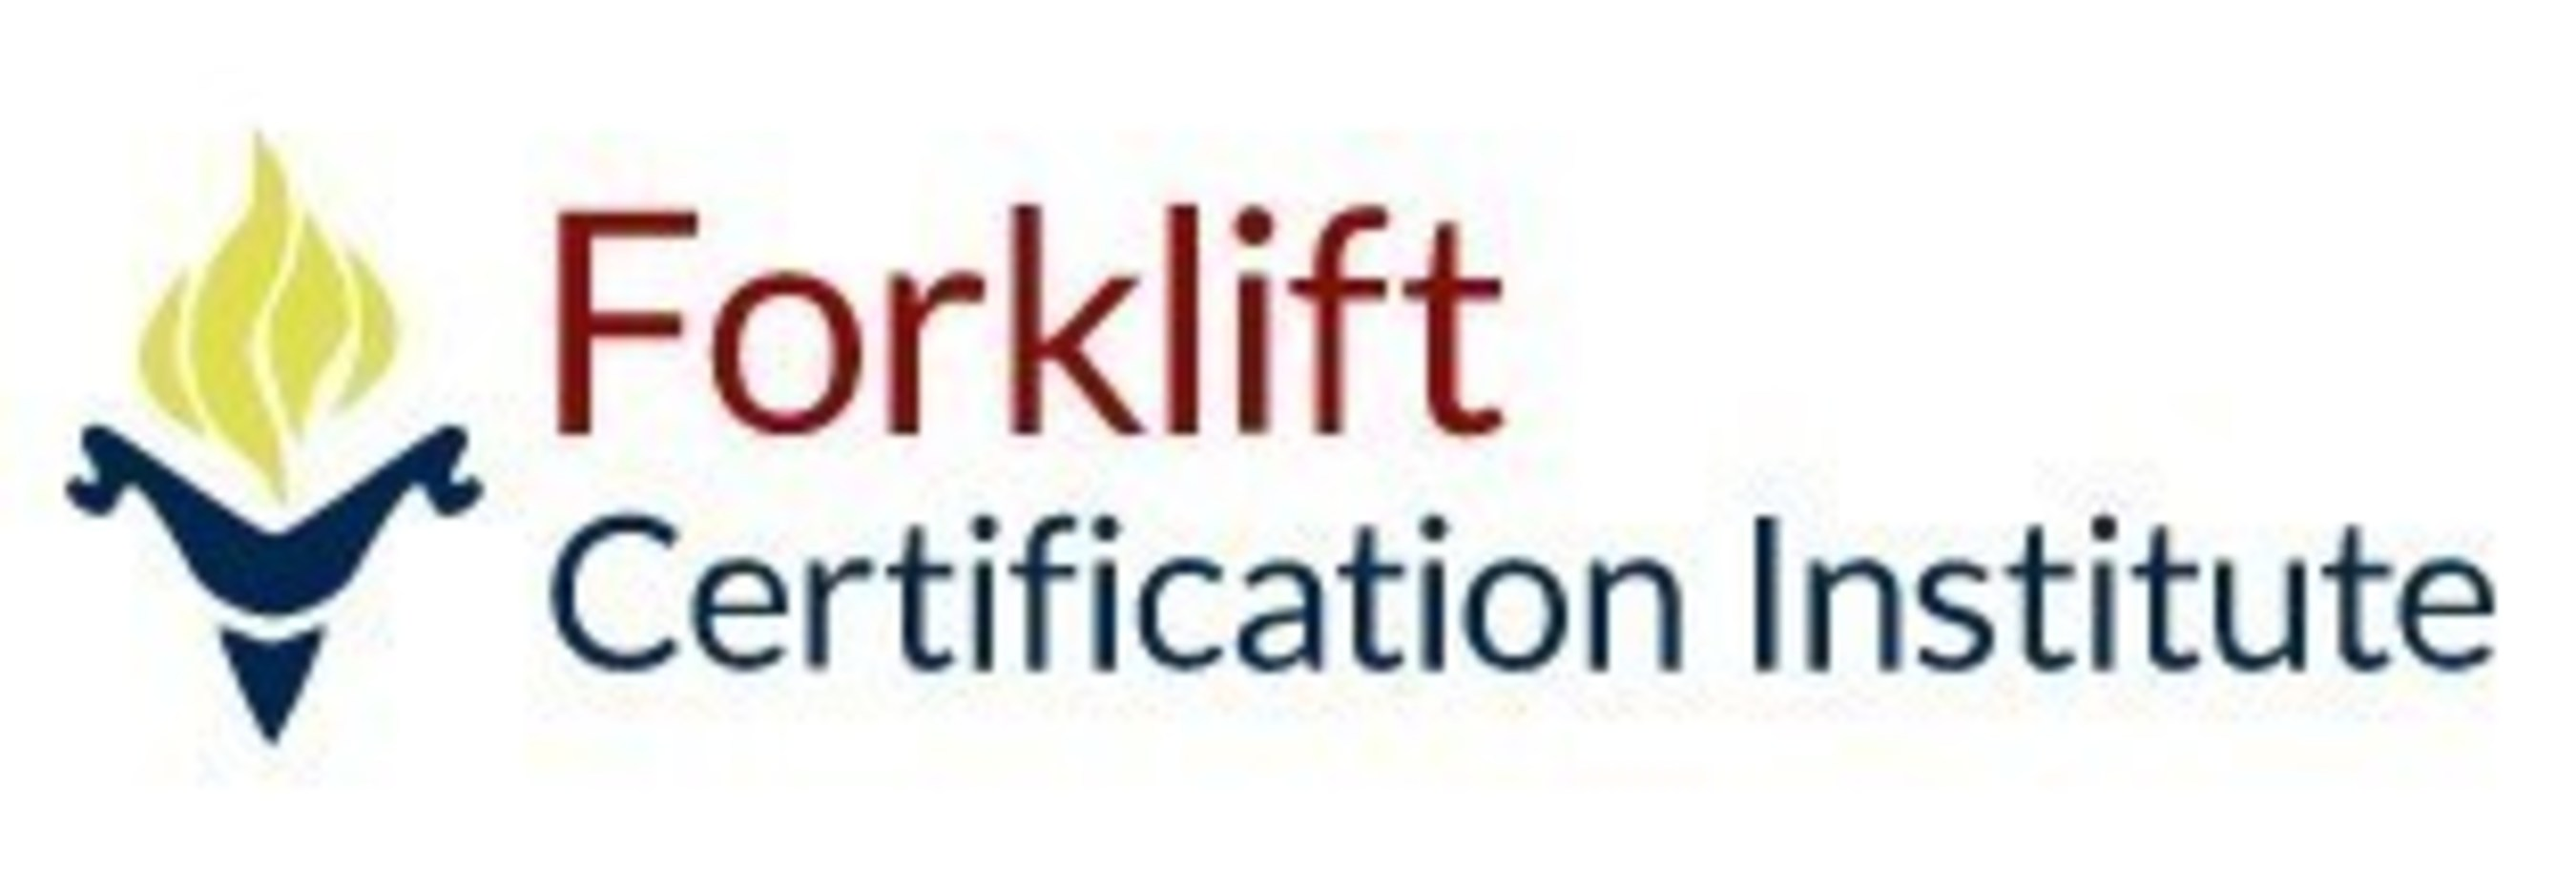 The Forklift Certification Institute Announces 100 Online Forklift